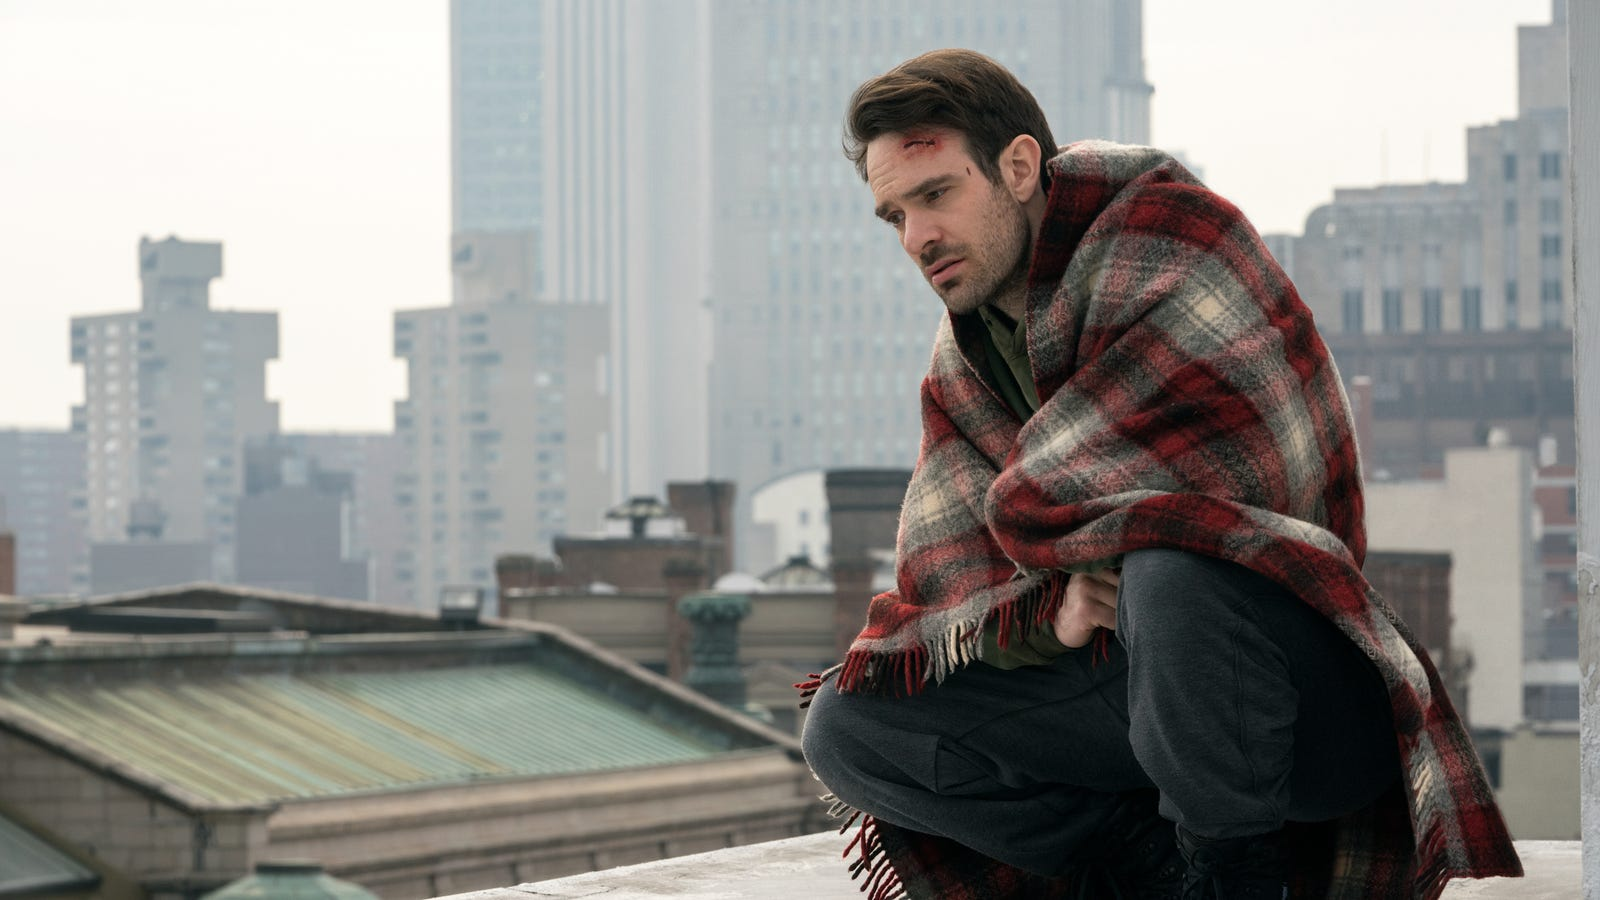 A image clip of Charlie Cox as Matt Murdock a.k.a Daredevil from the Daredevil Netflix series